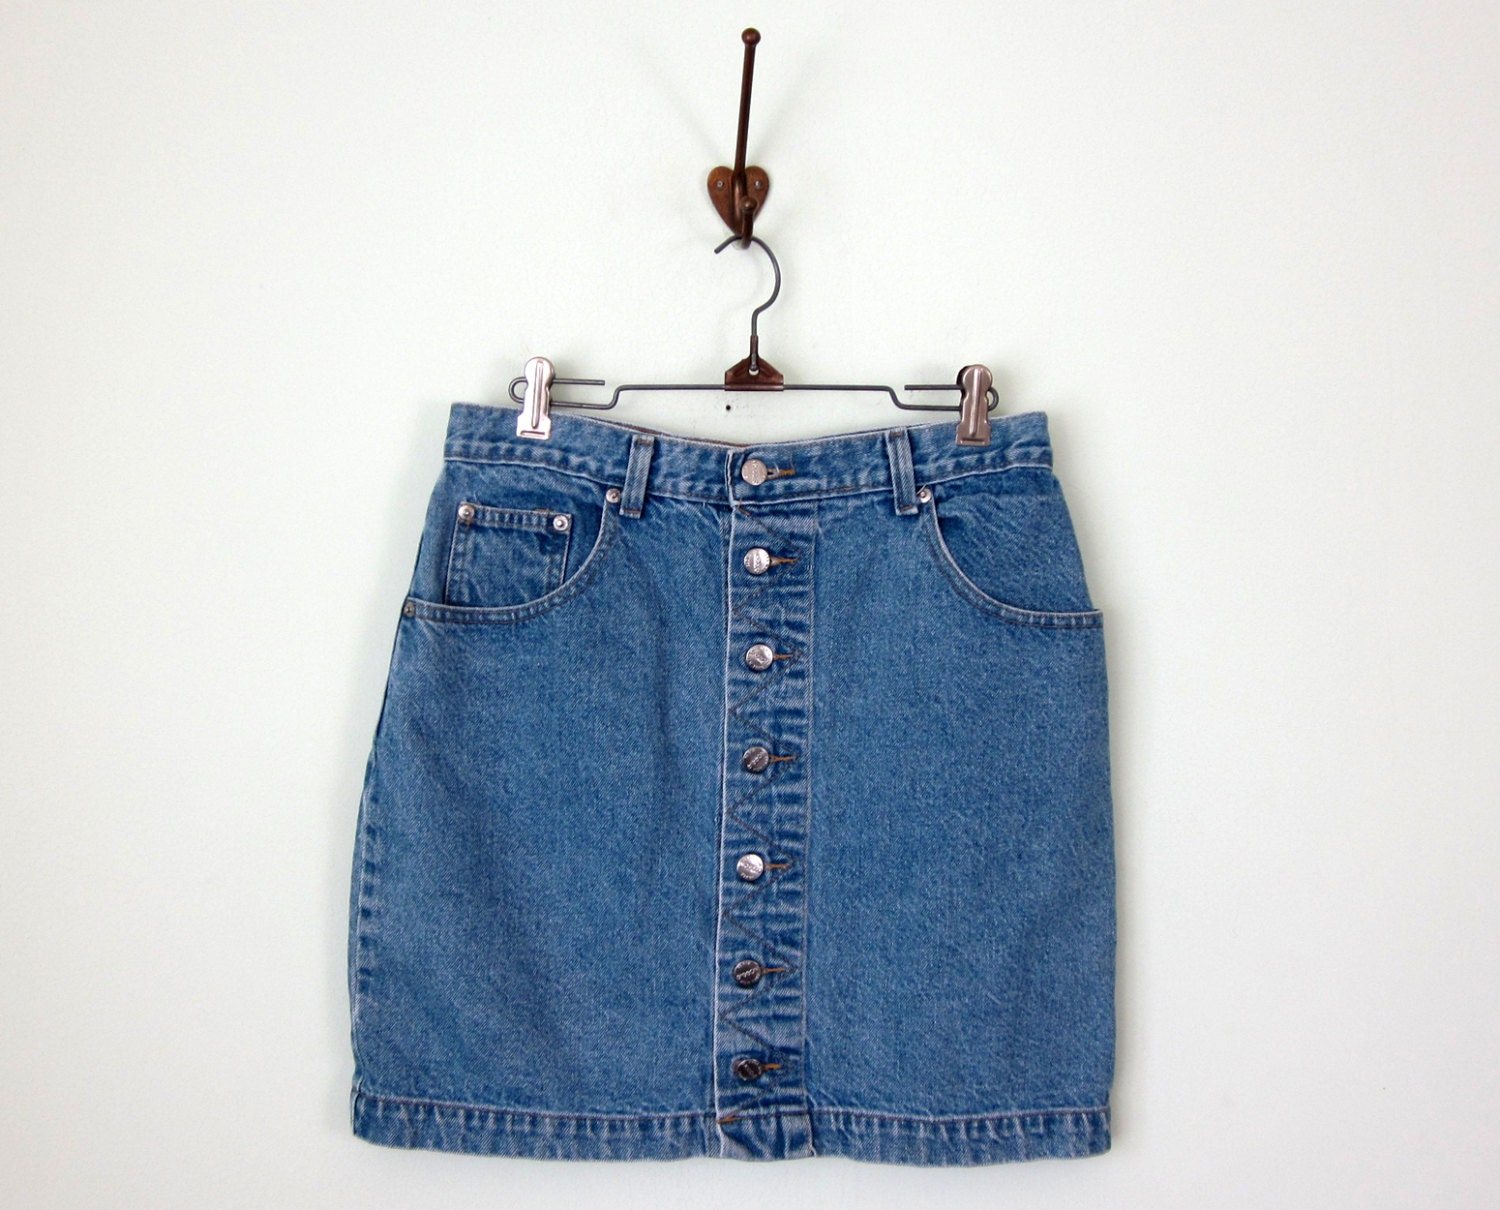 80s skirt denim blue jean faded button front by